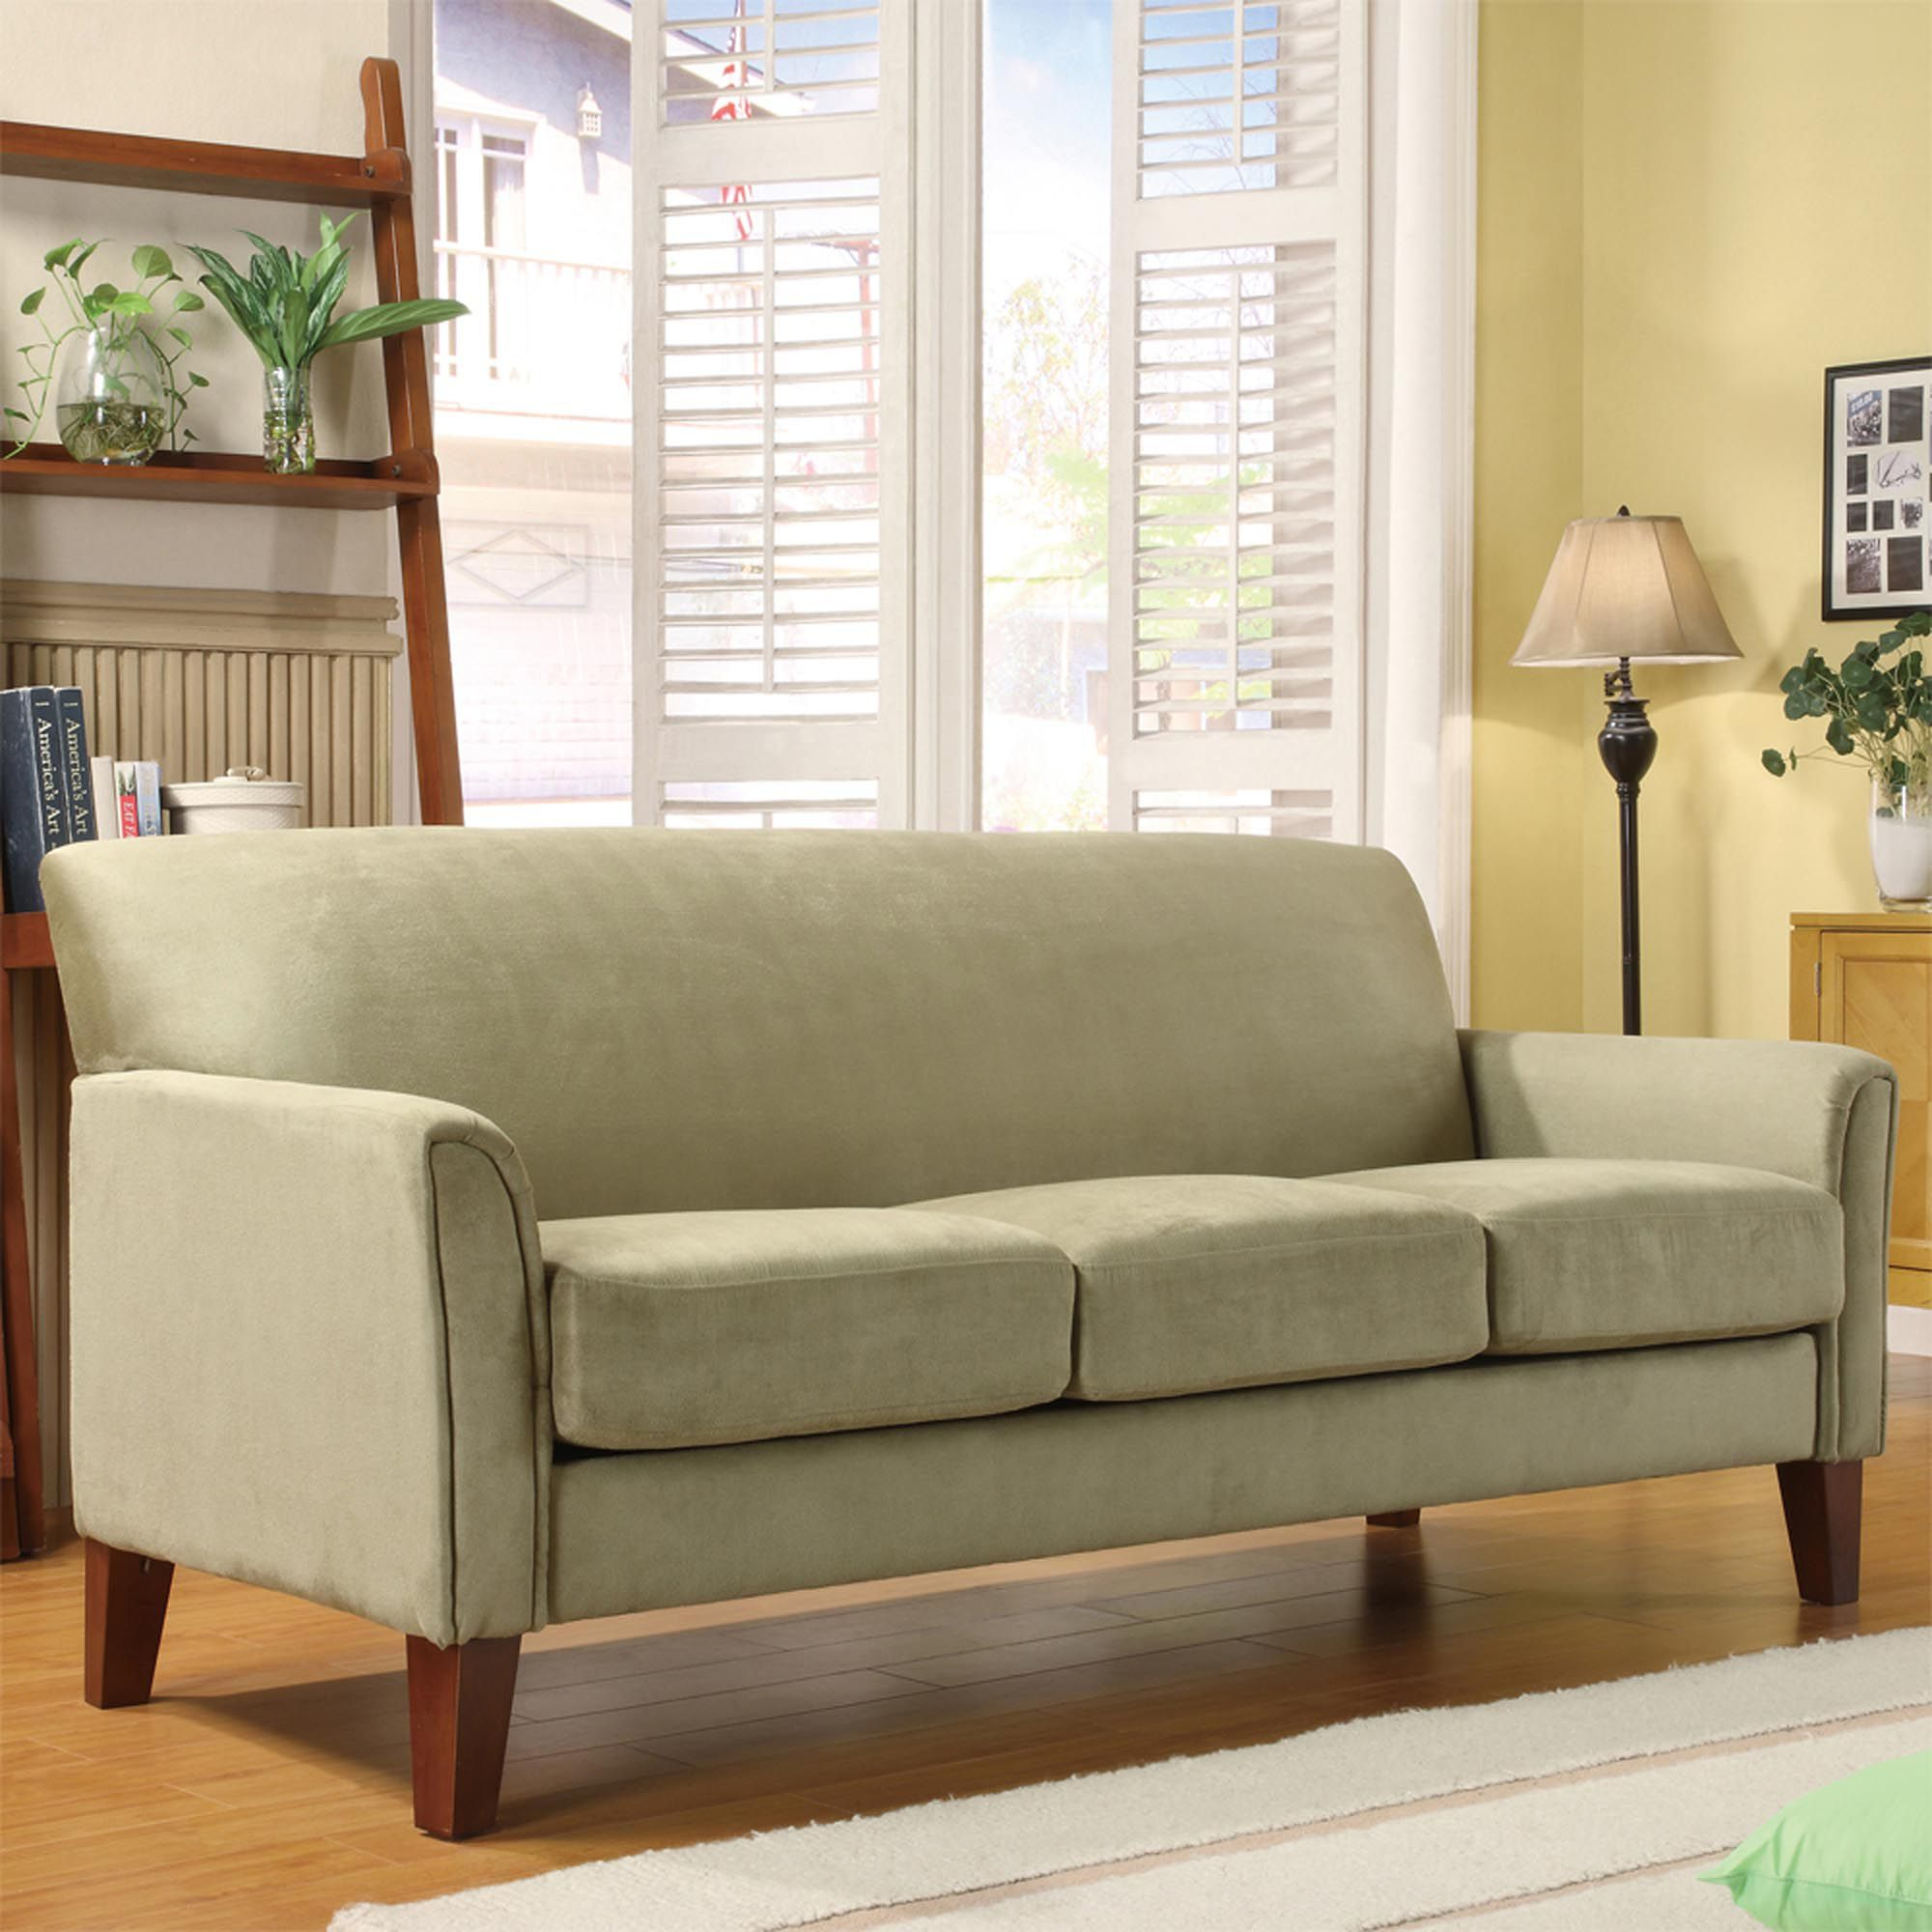 sears clearwater sofa sectional red cafe derry street spin prod 161478001 hei333 andwid333 andop sharpen1